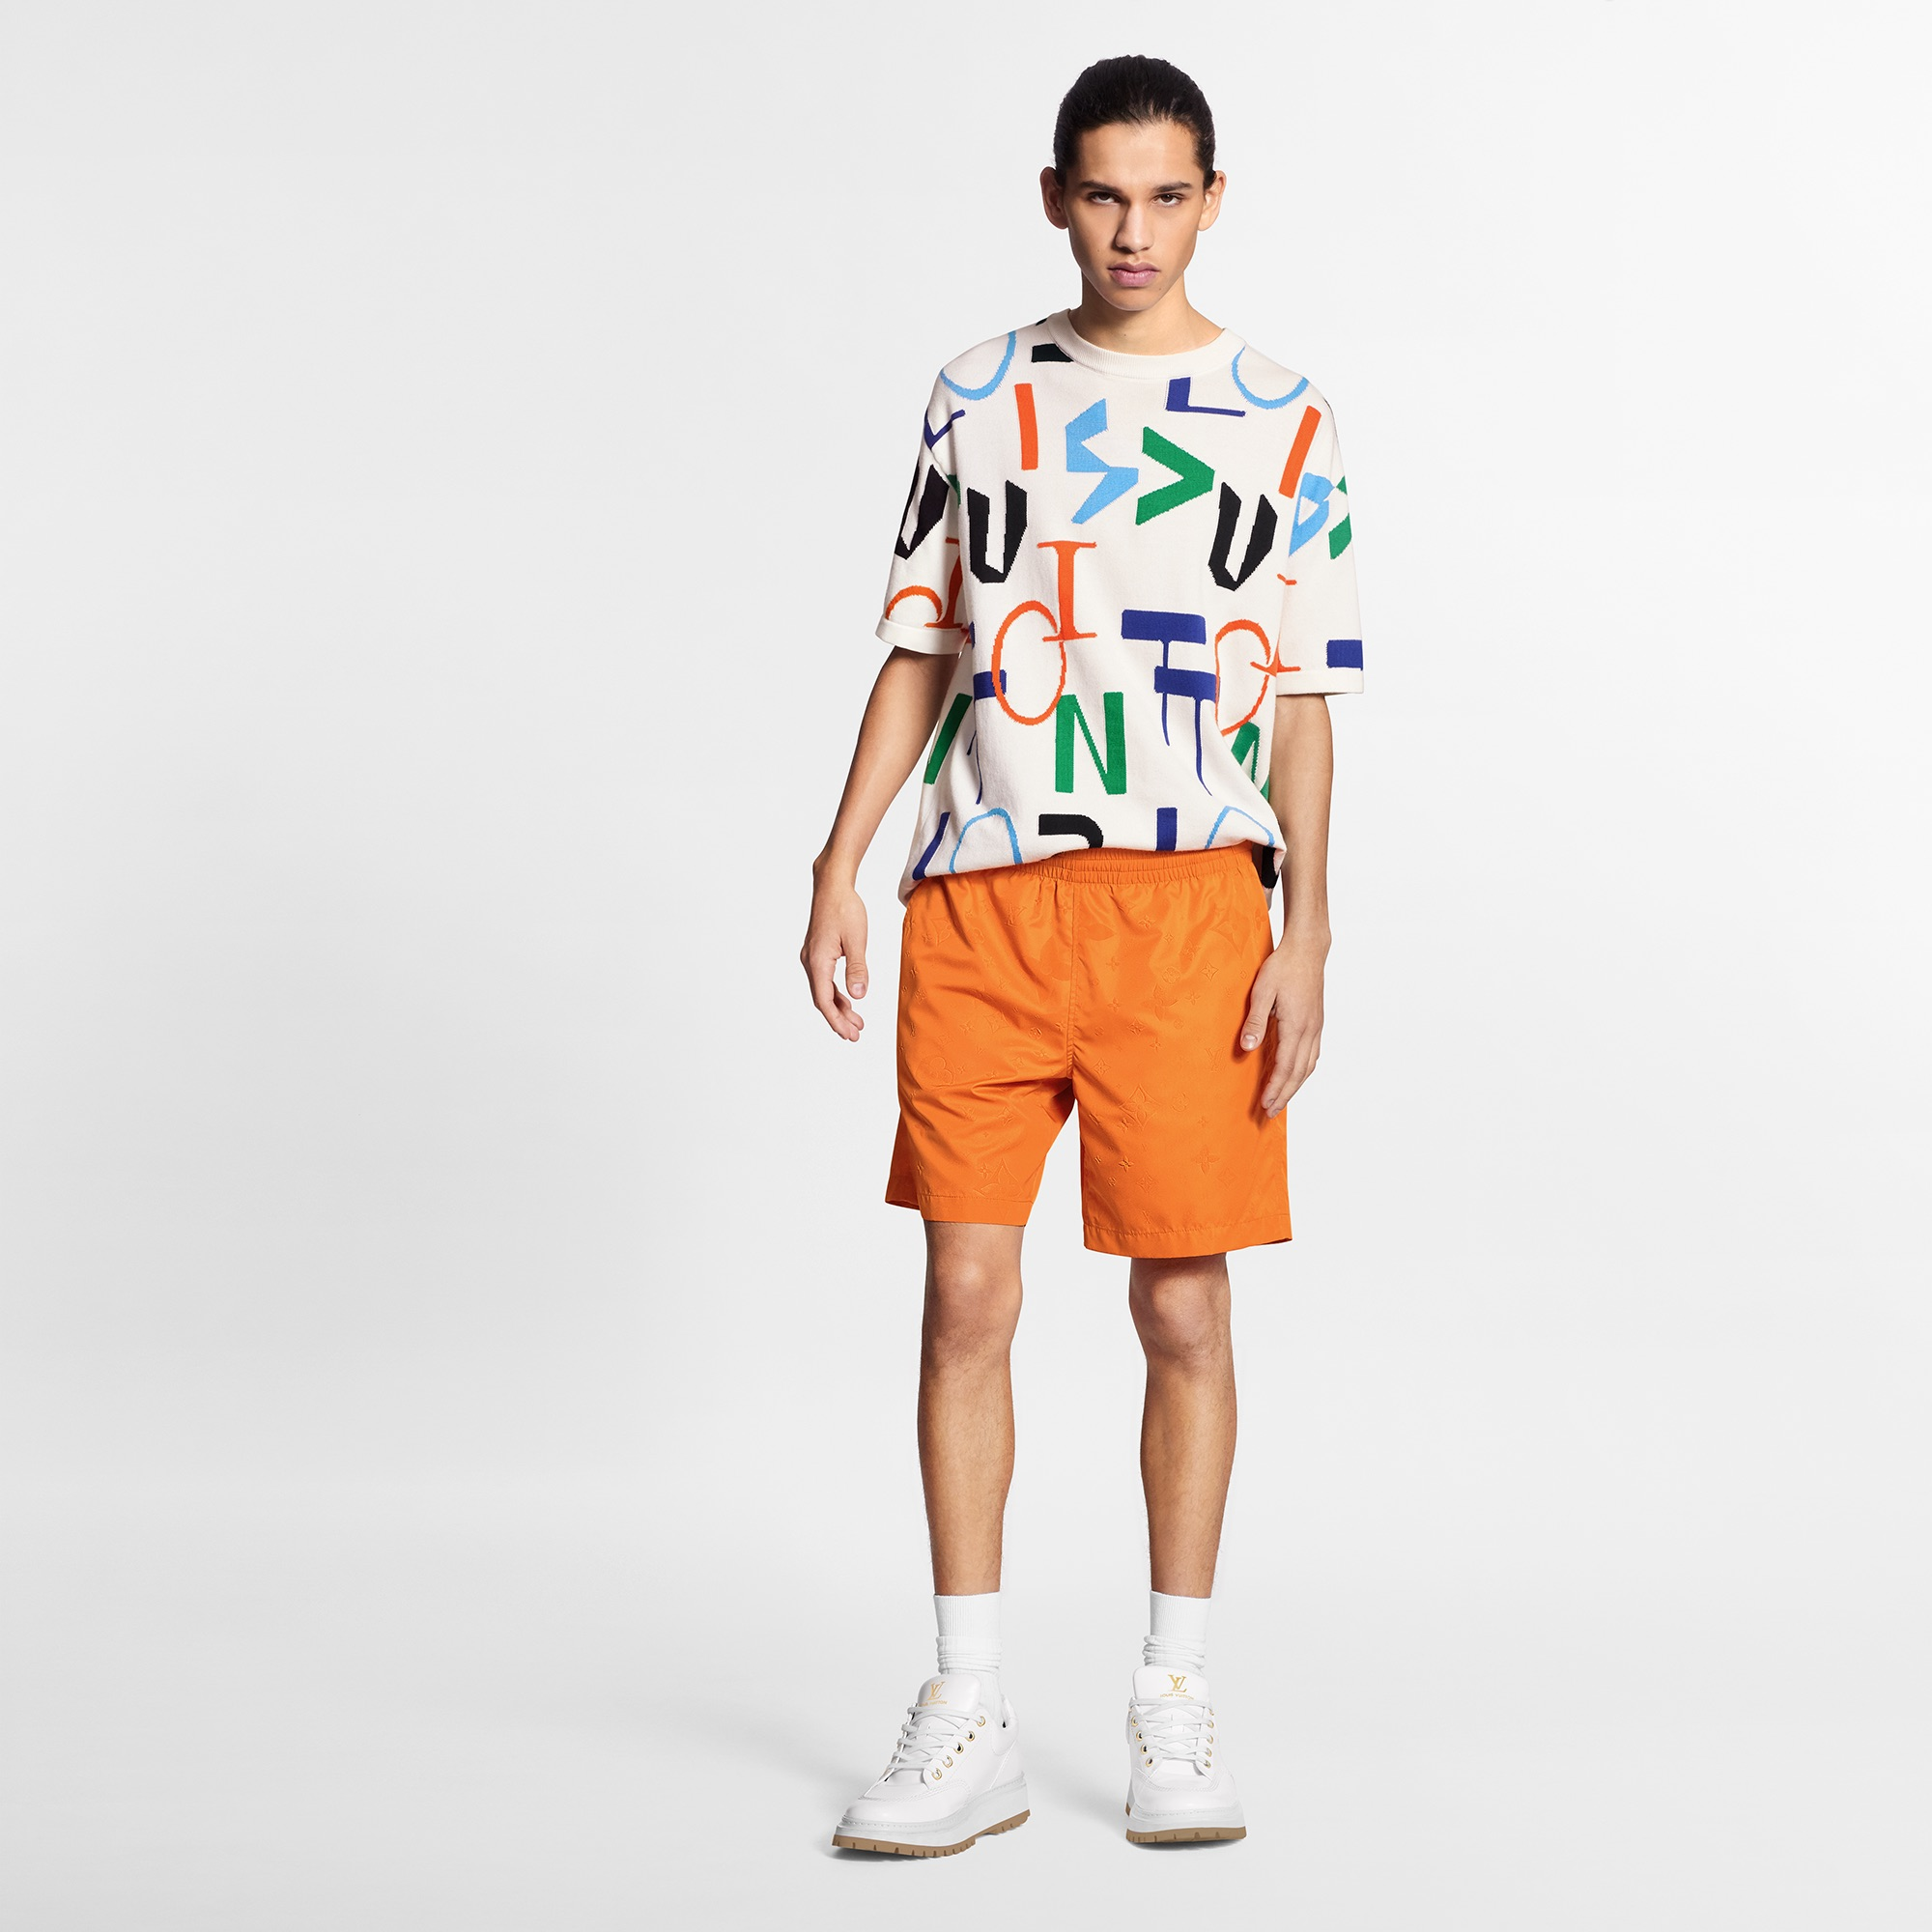 Louis Vuitton Capsule Collection orange shorts graphic t-shirt